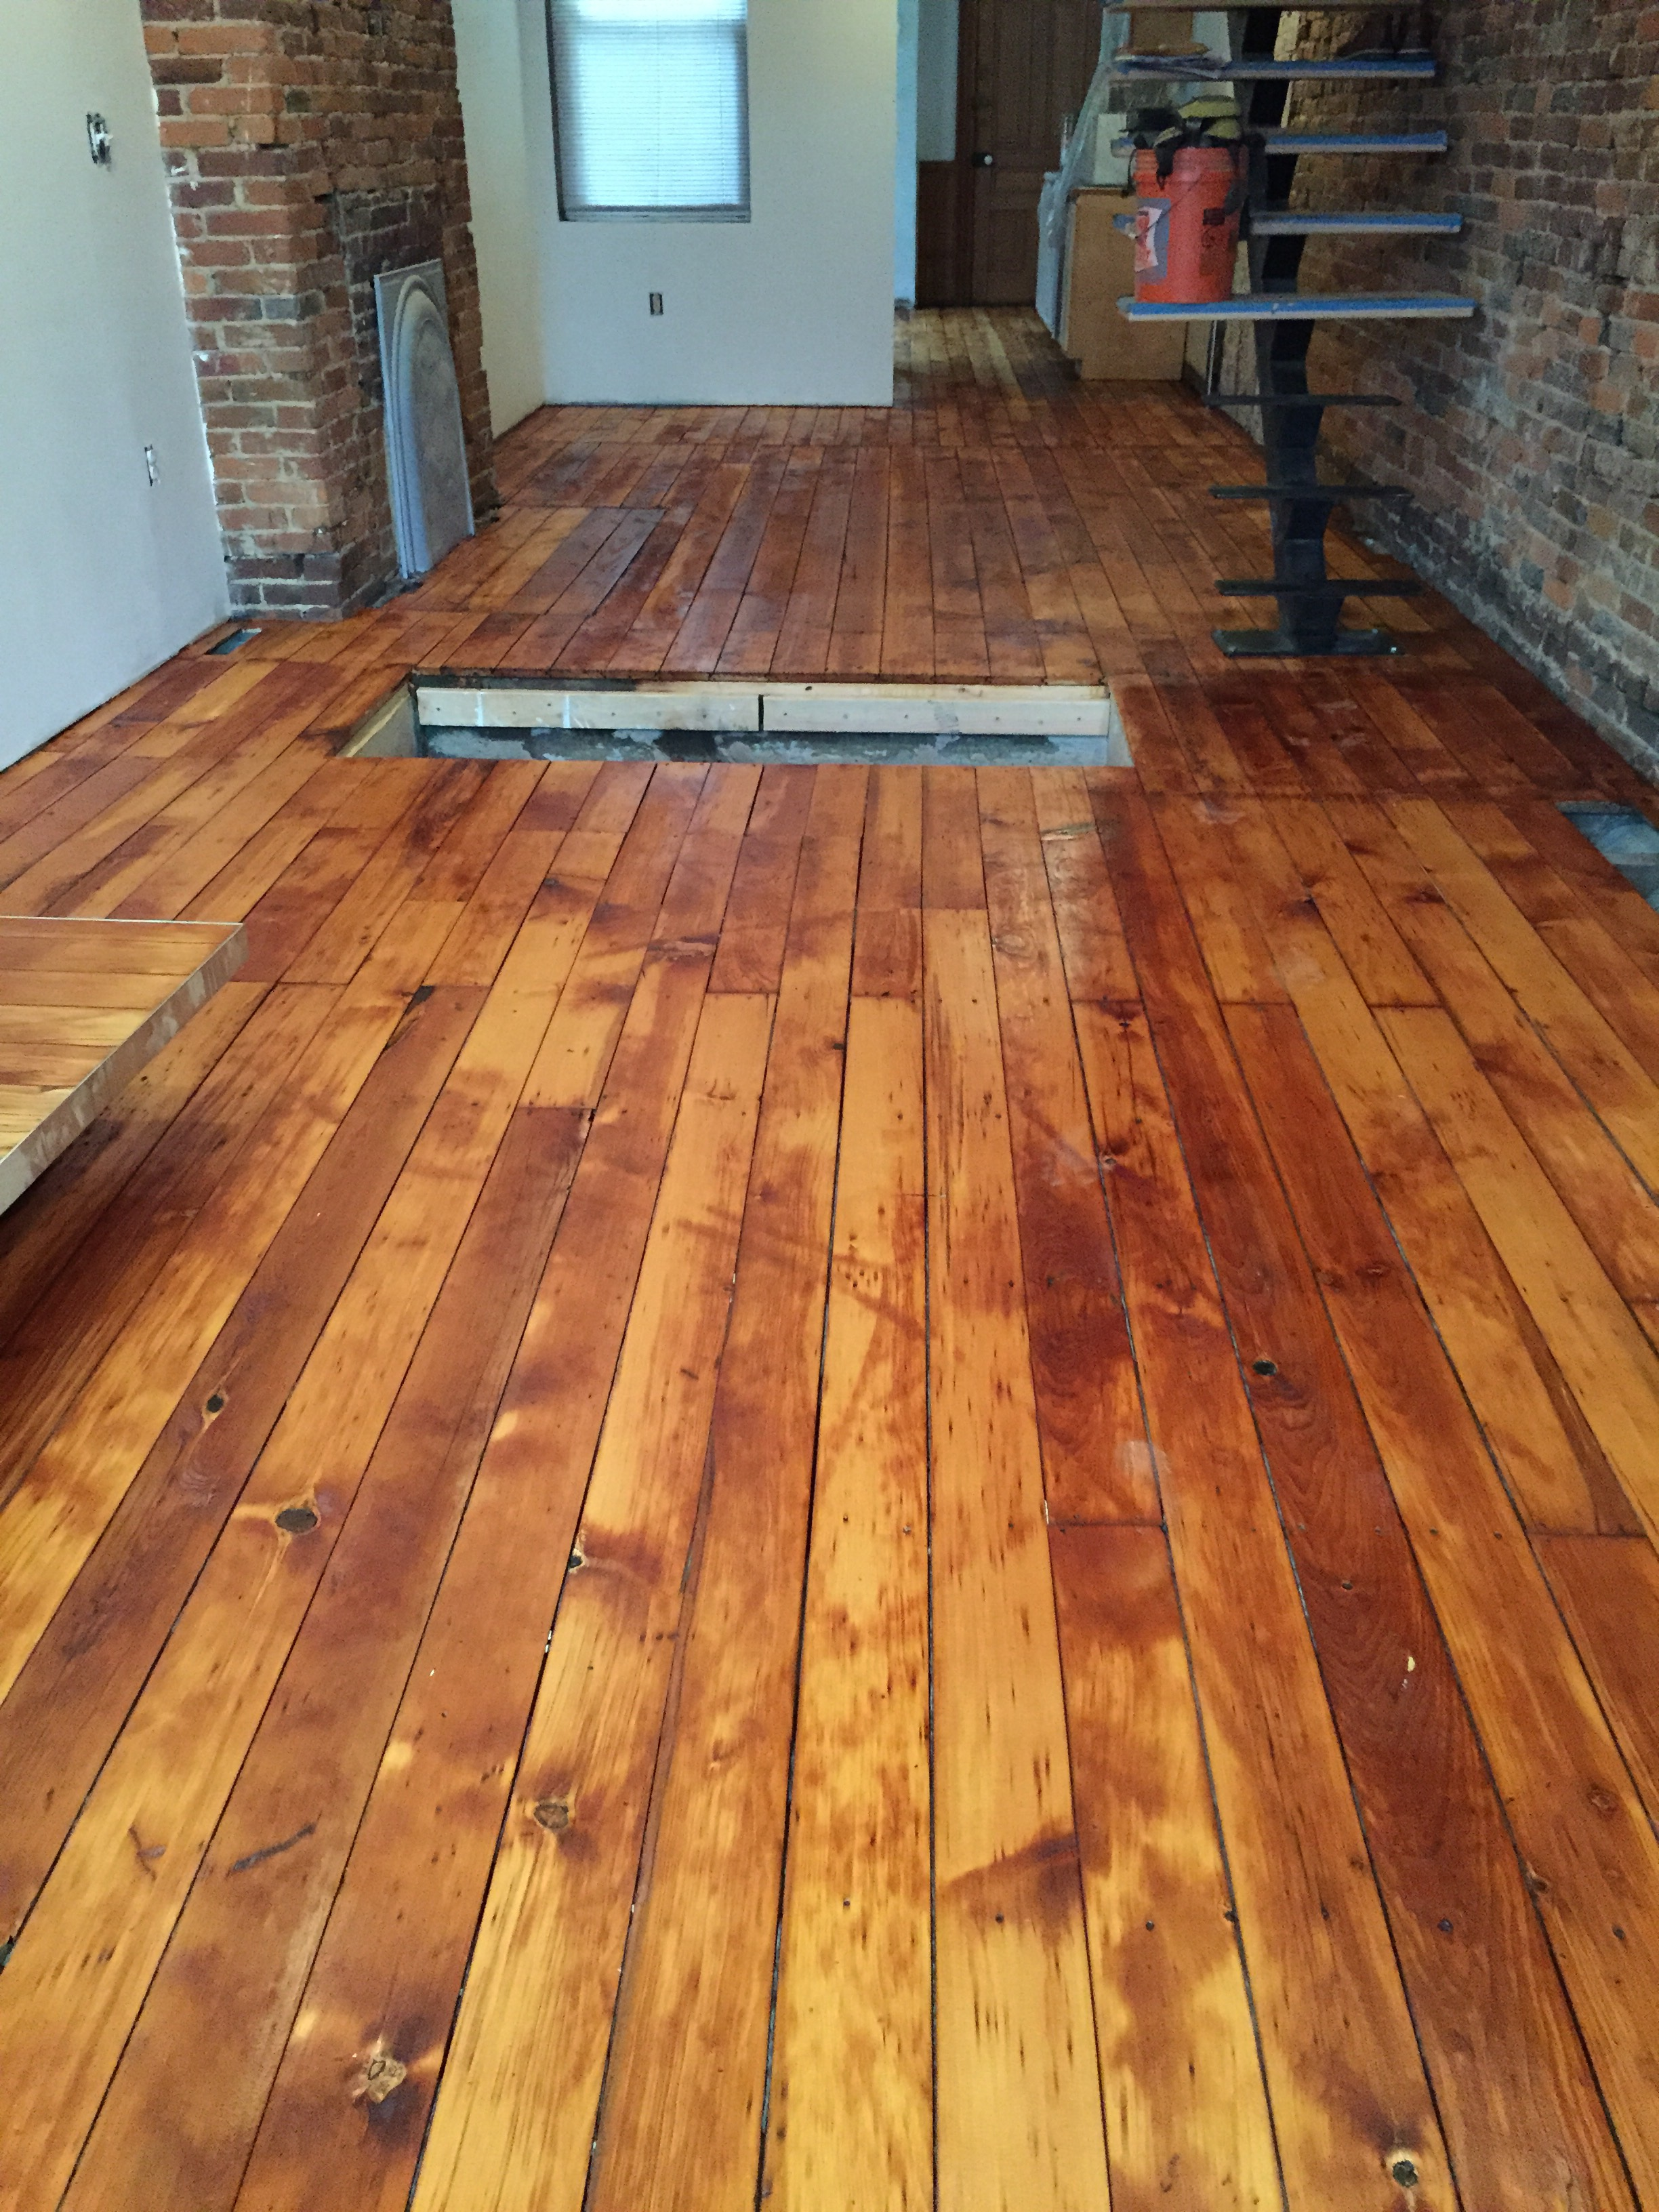 Is water based polyurethane vs oil based - When We Put New Pine Floors In Our Upstairs A Clear Water Based Polyurethane On Them